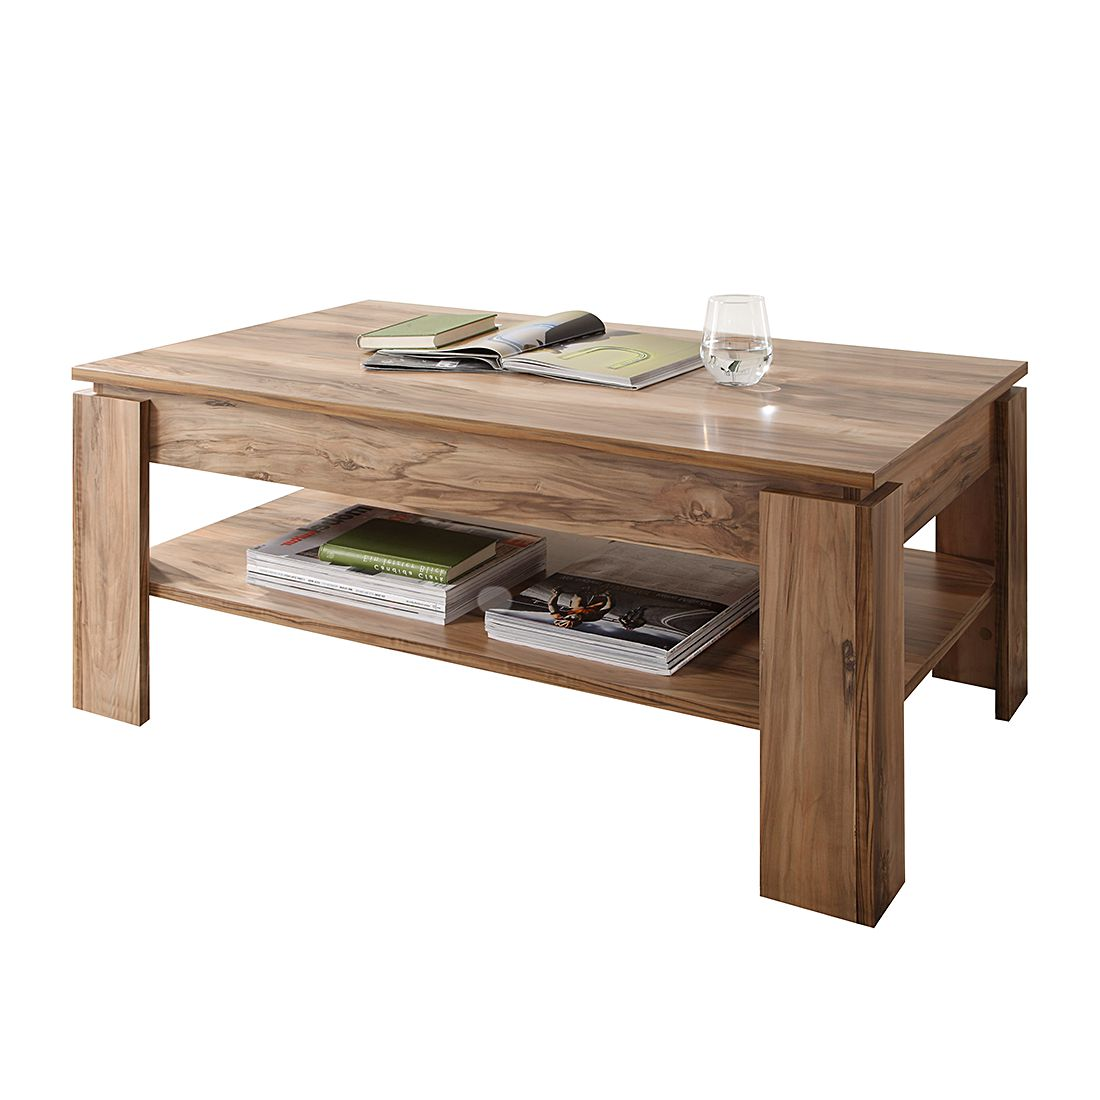 Table basse Elliot